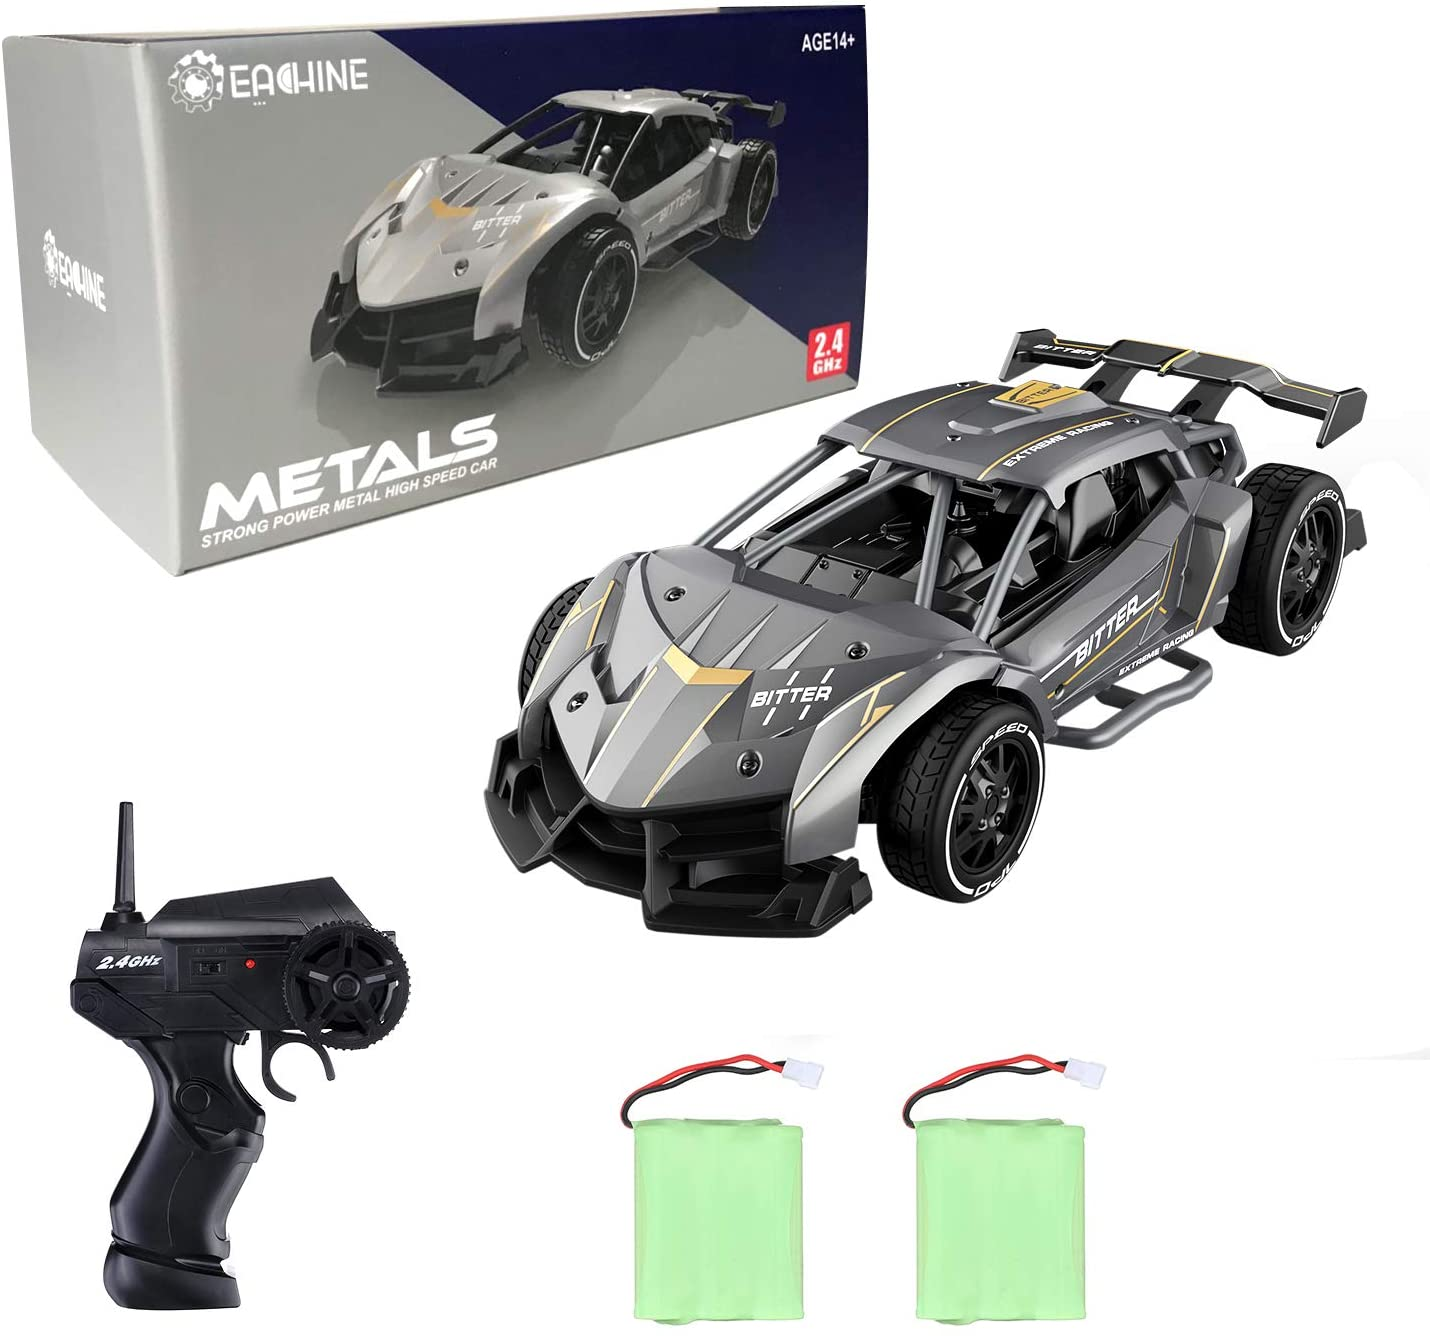 EACHINE Remote Control Cars for Boys